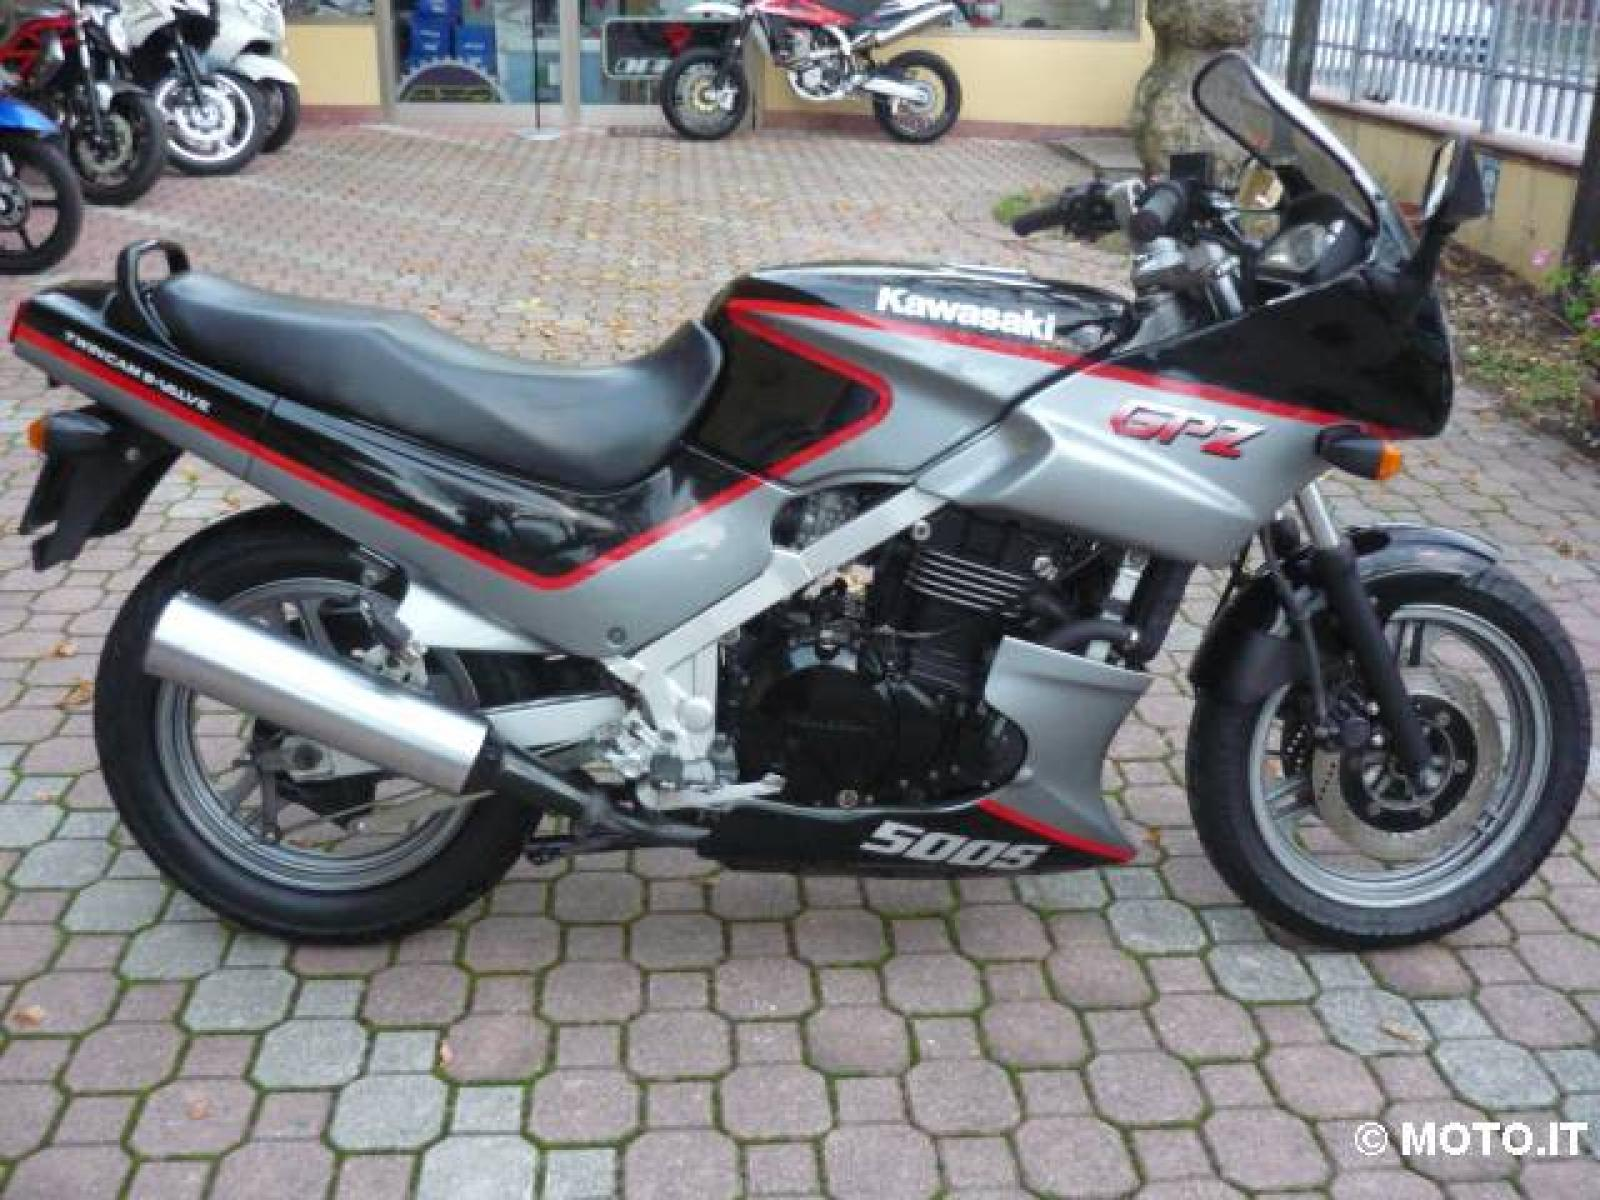 Kawasaki GPZ 500 S (reduced effect) 1988 images #83746